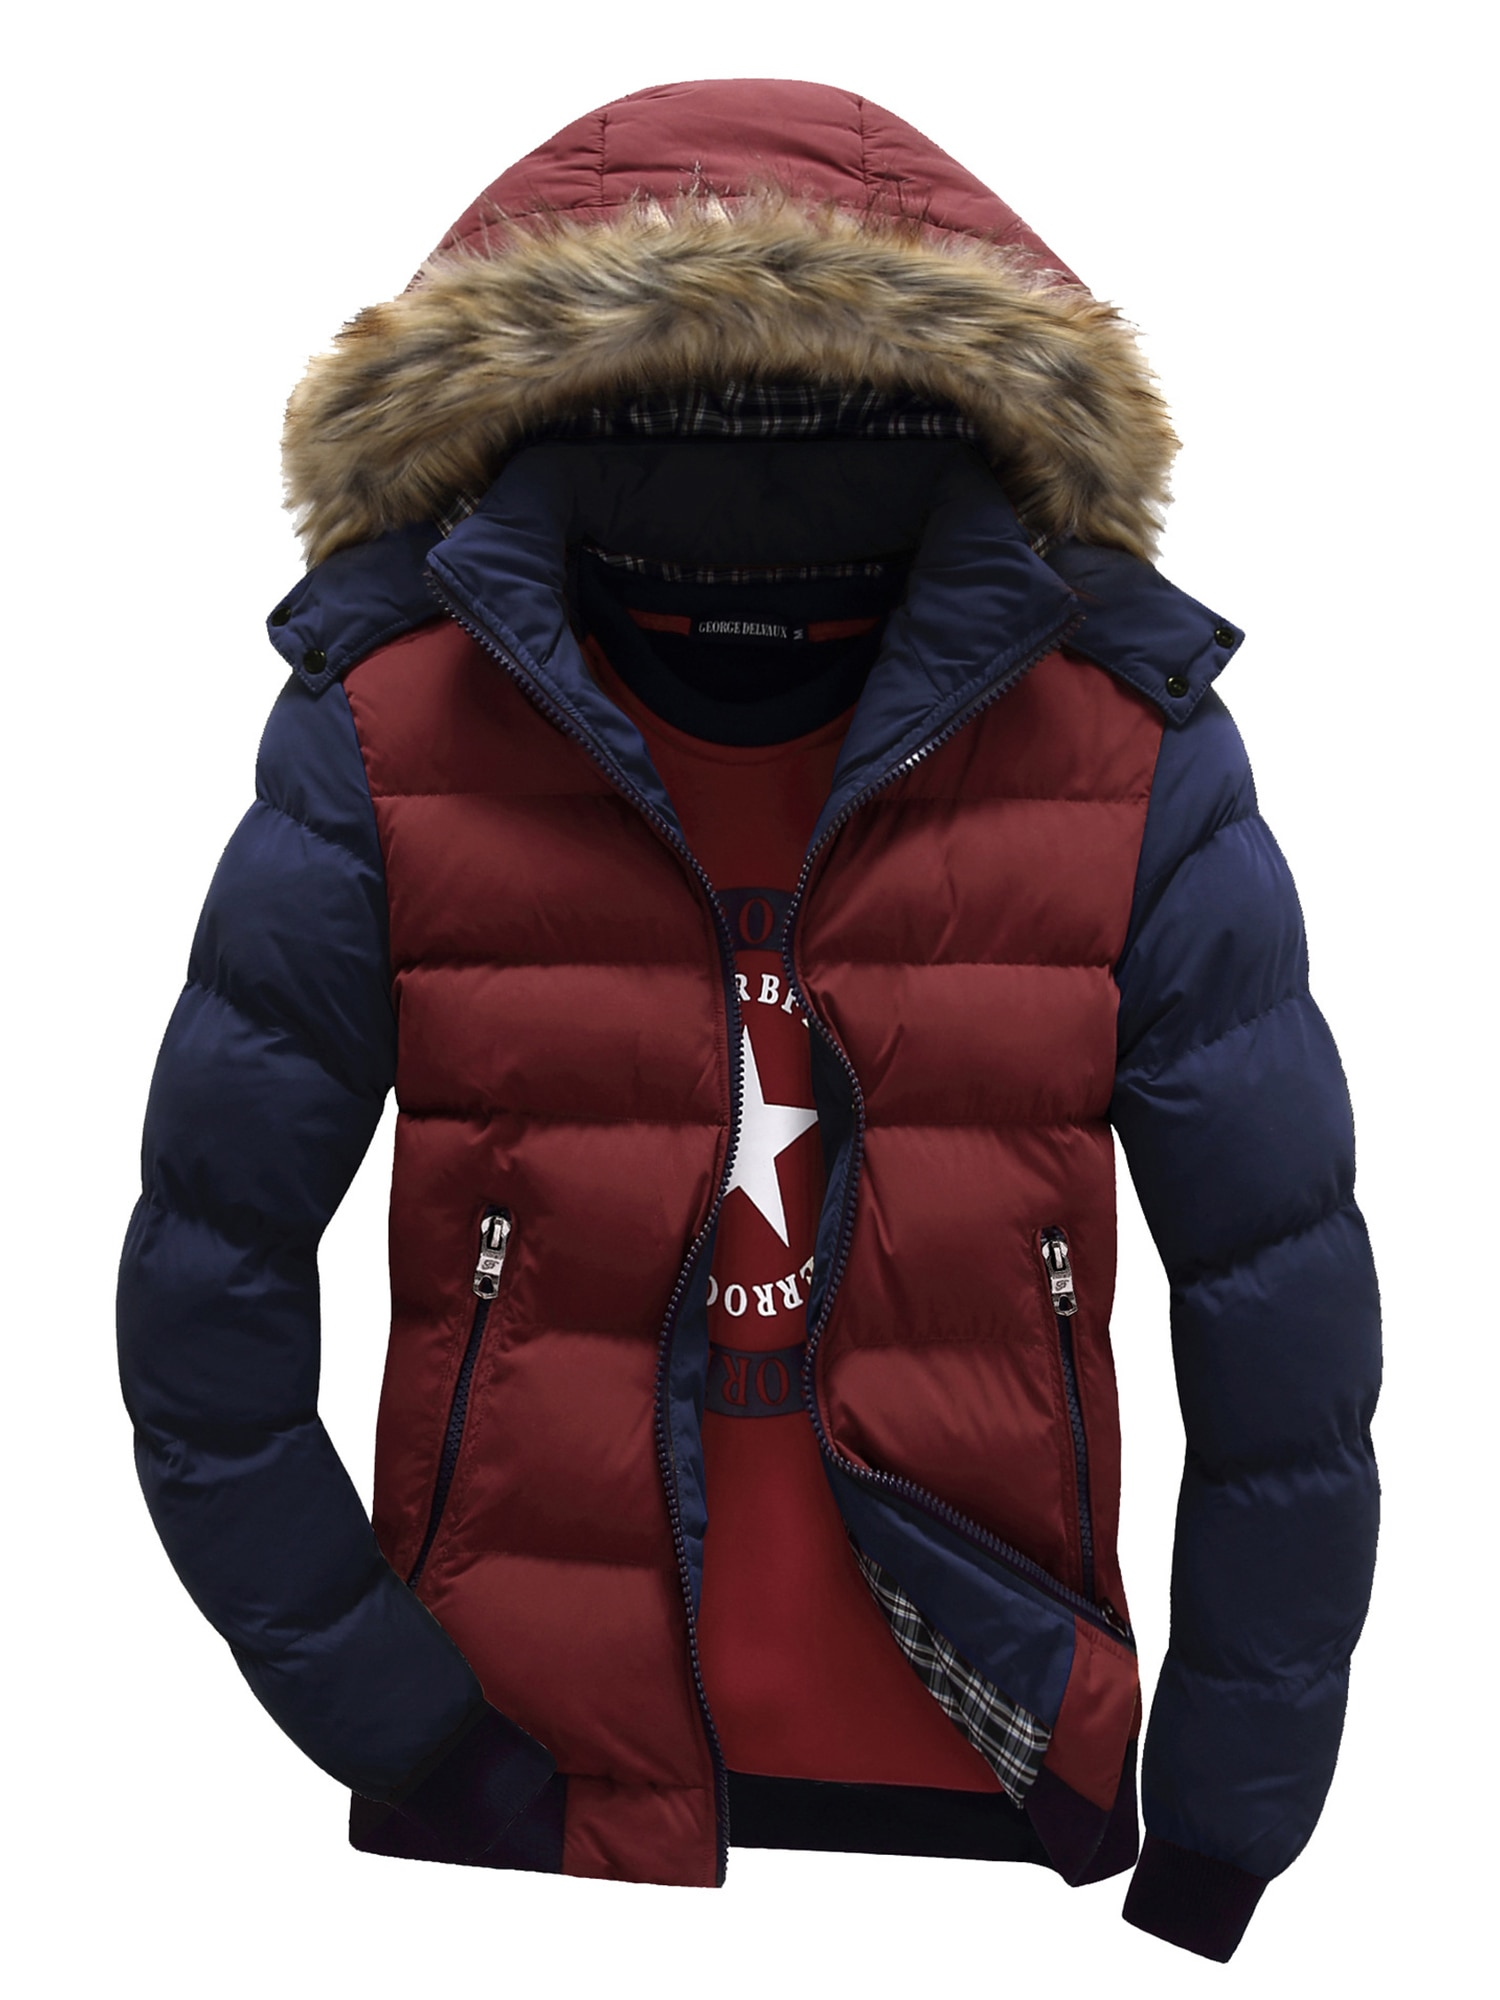 Men Hooded Down Jackets Daily Warm Winter Outwear Zip Up Colored Coat M-4Xl